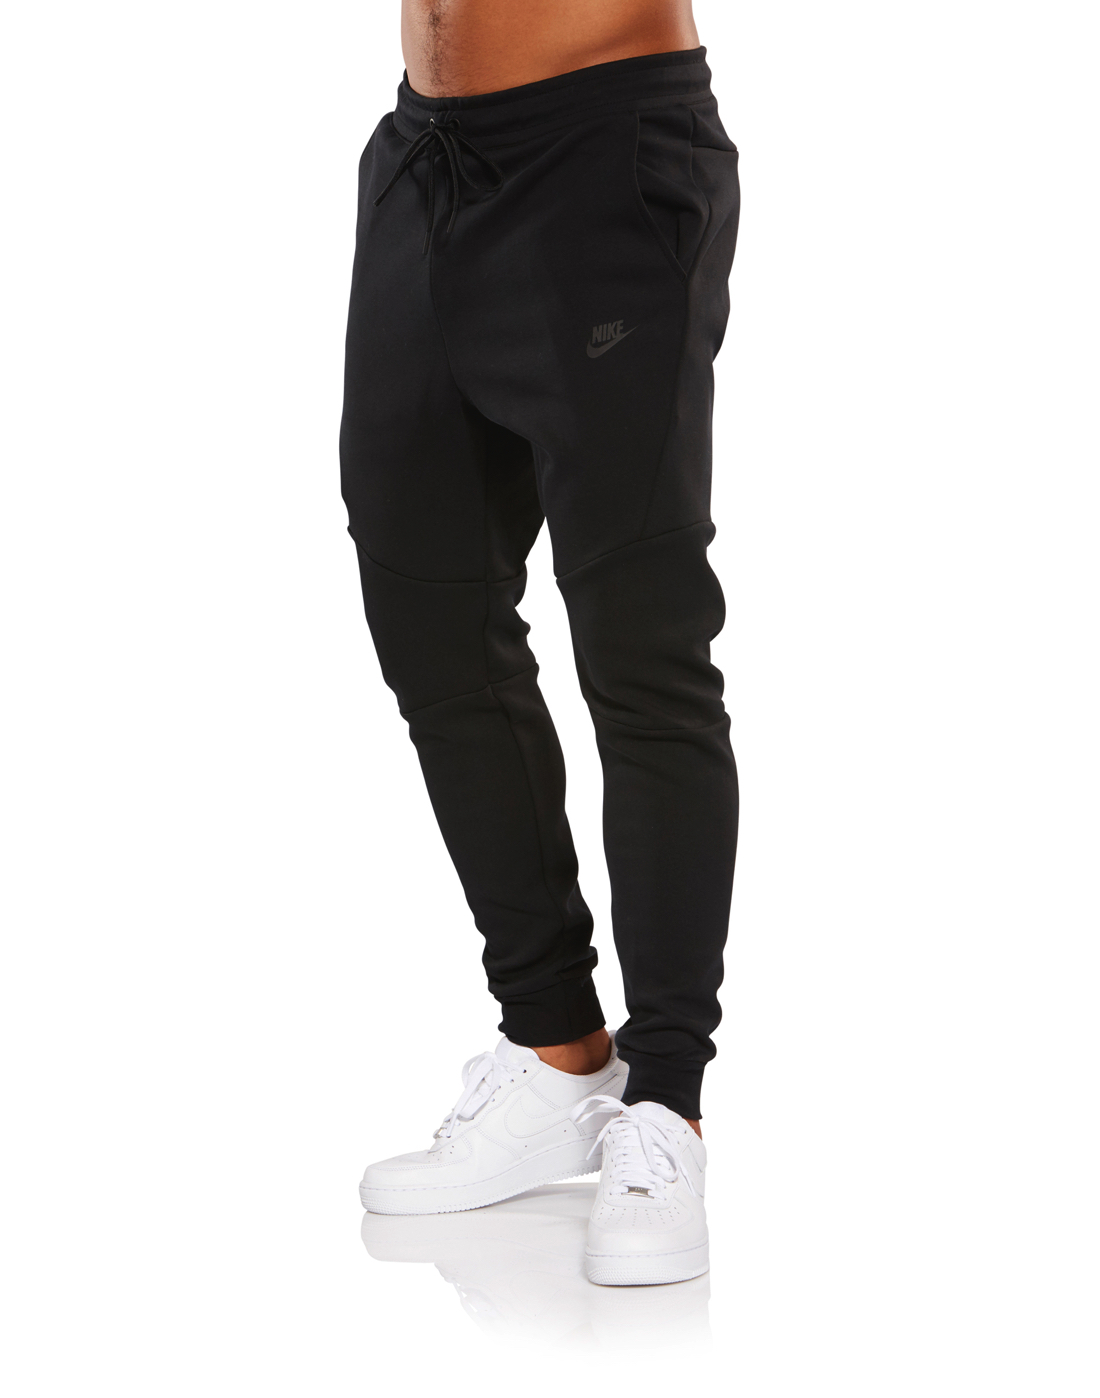 5603b8c33eca Nike. Mens Tech Fleece Joggers. Mens Tech Fleece Joggers ...